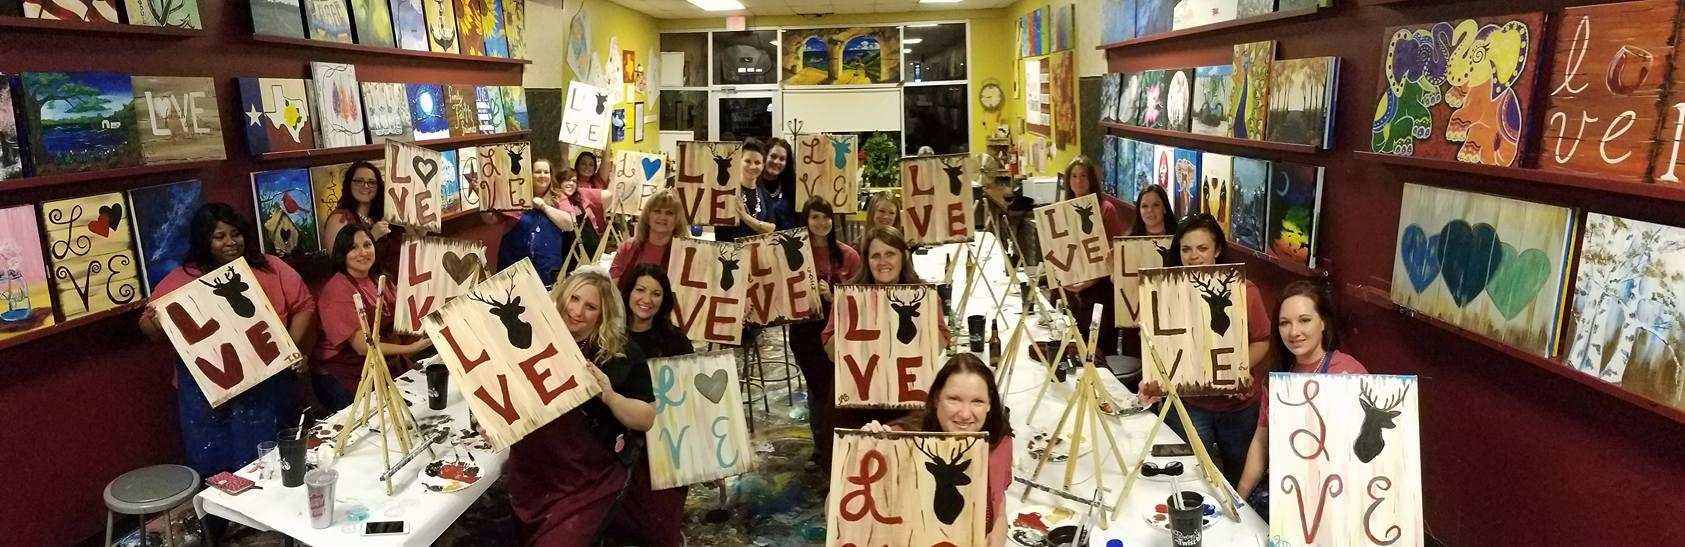 painting with a twist in greenville tx 75402